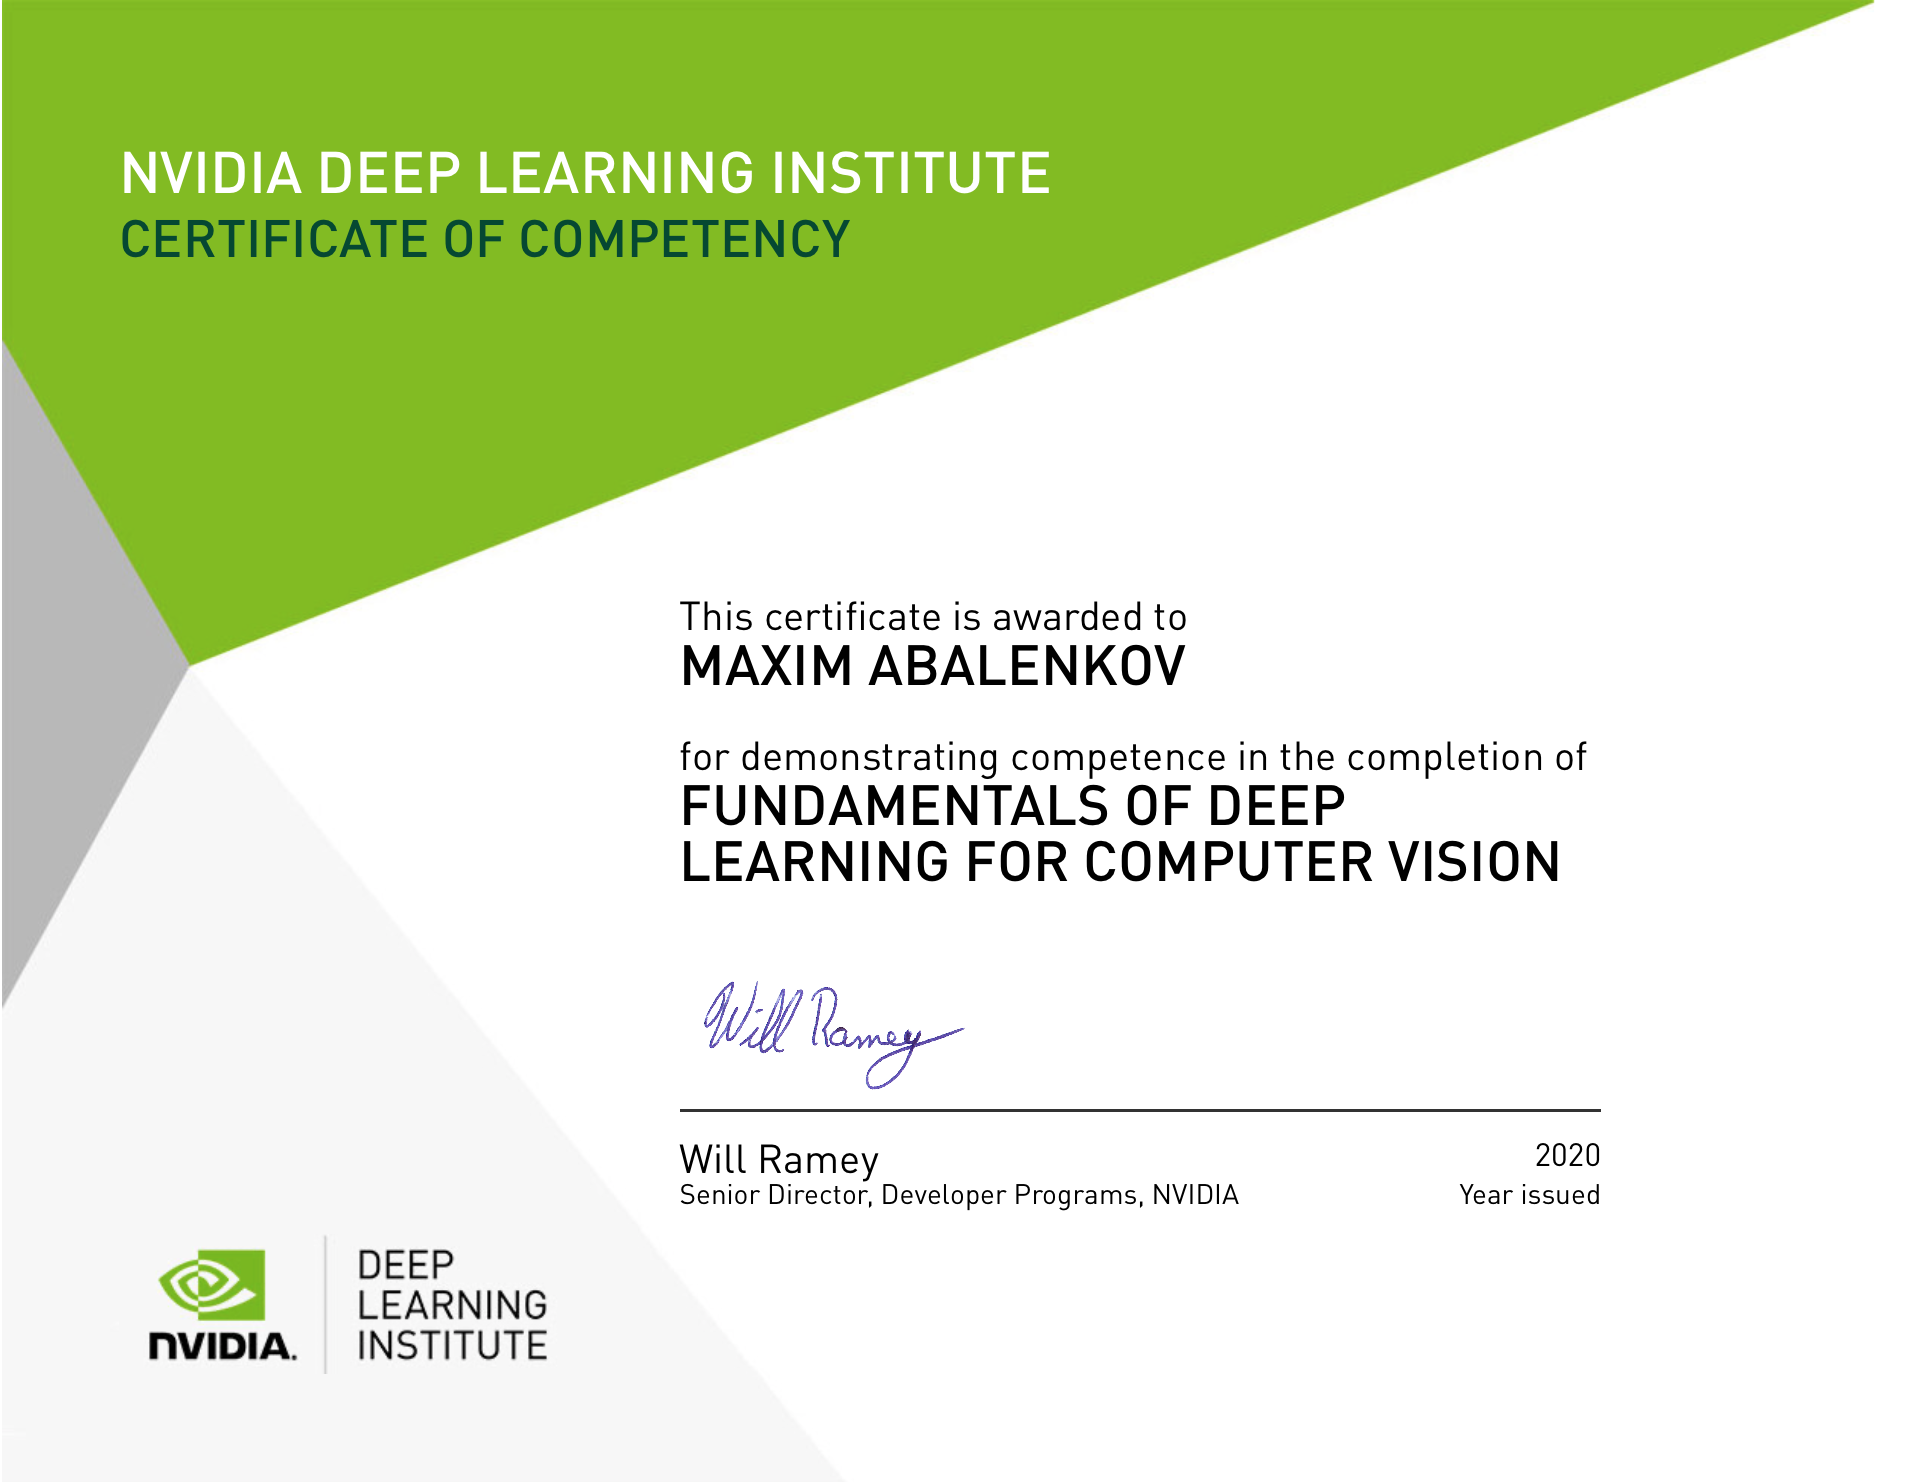 NVIDIA Deep Learning for Computer Vision, Certificate